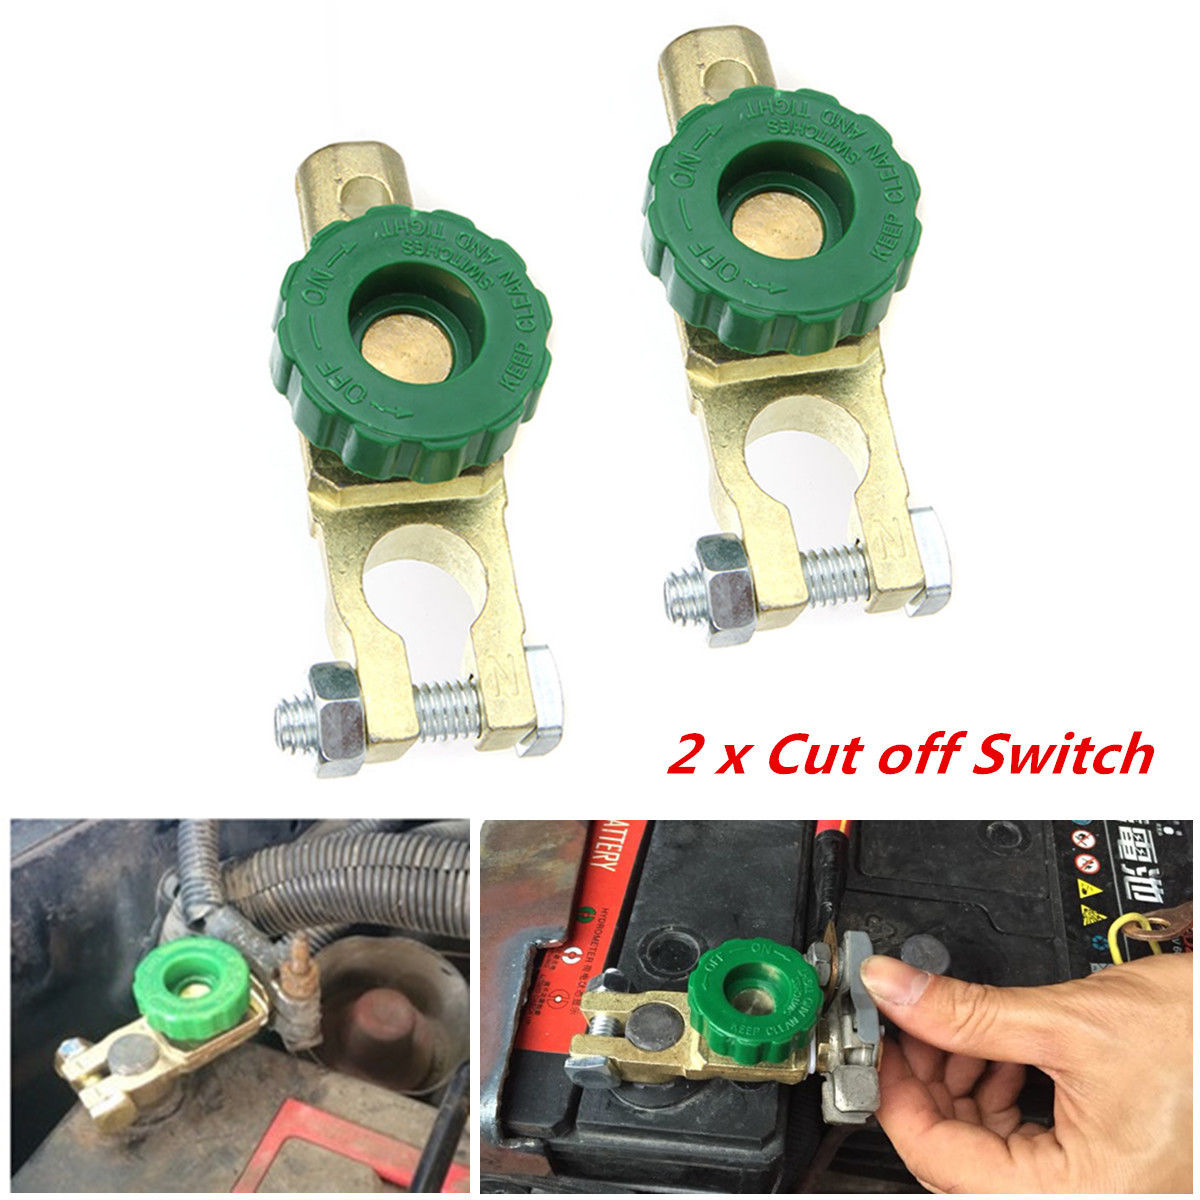 Details about For 12V & 24V Car Battery Terminal Disconnect Switch Cut Off  Power Protecter 2X